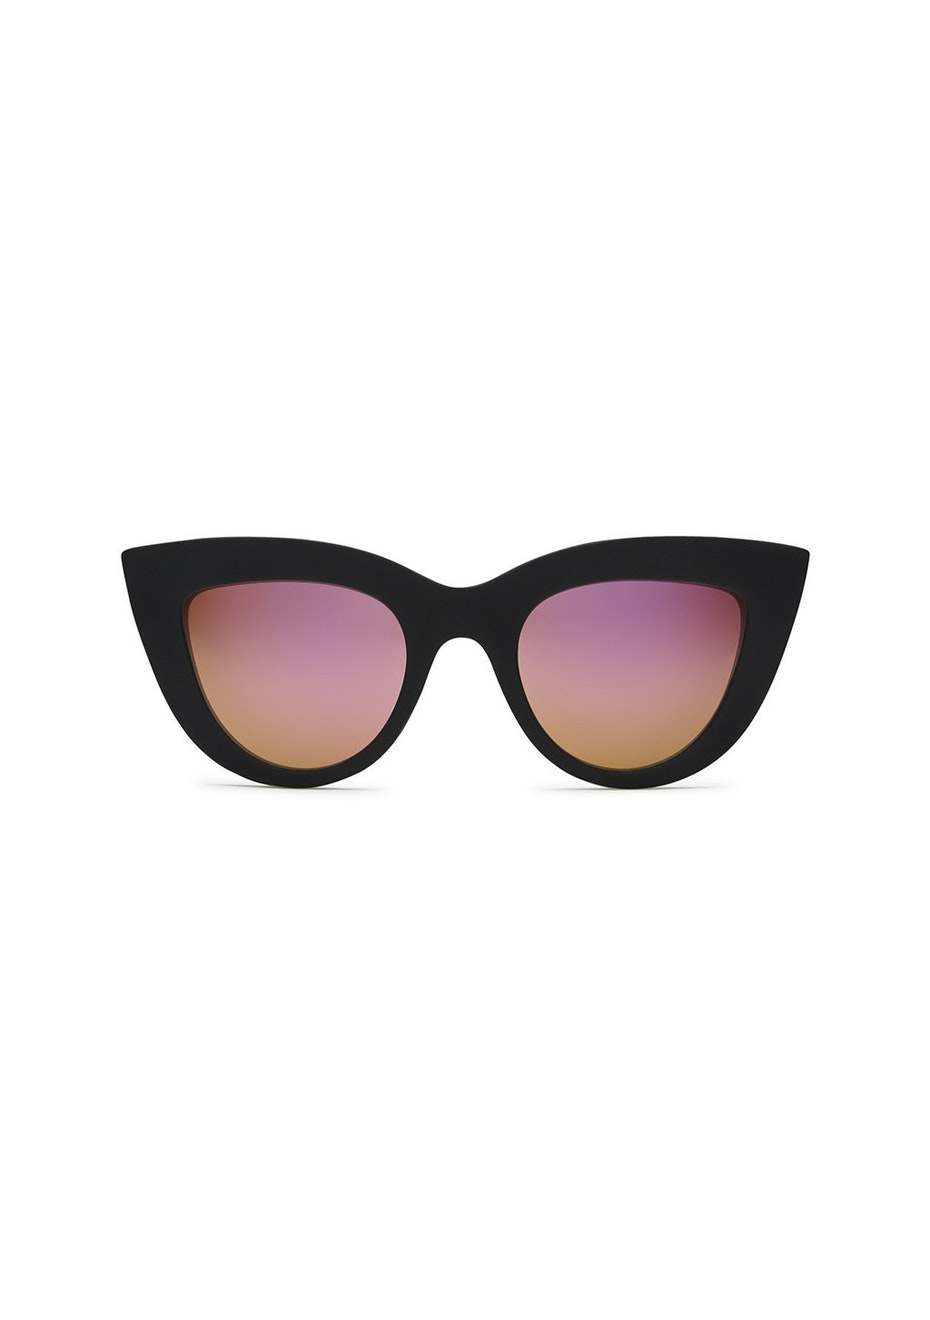 Quay - Kitti - Black/Pink